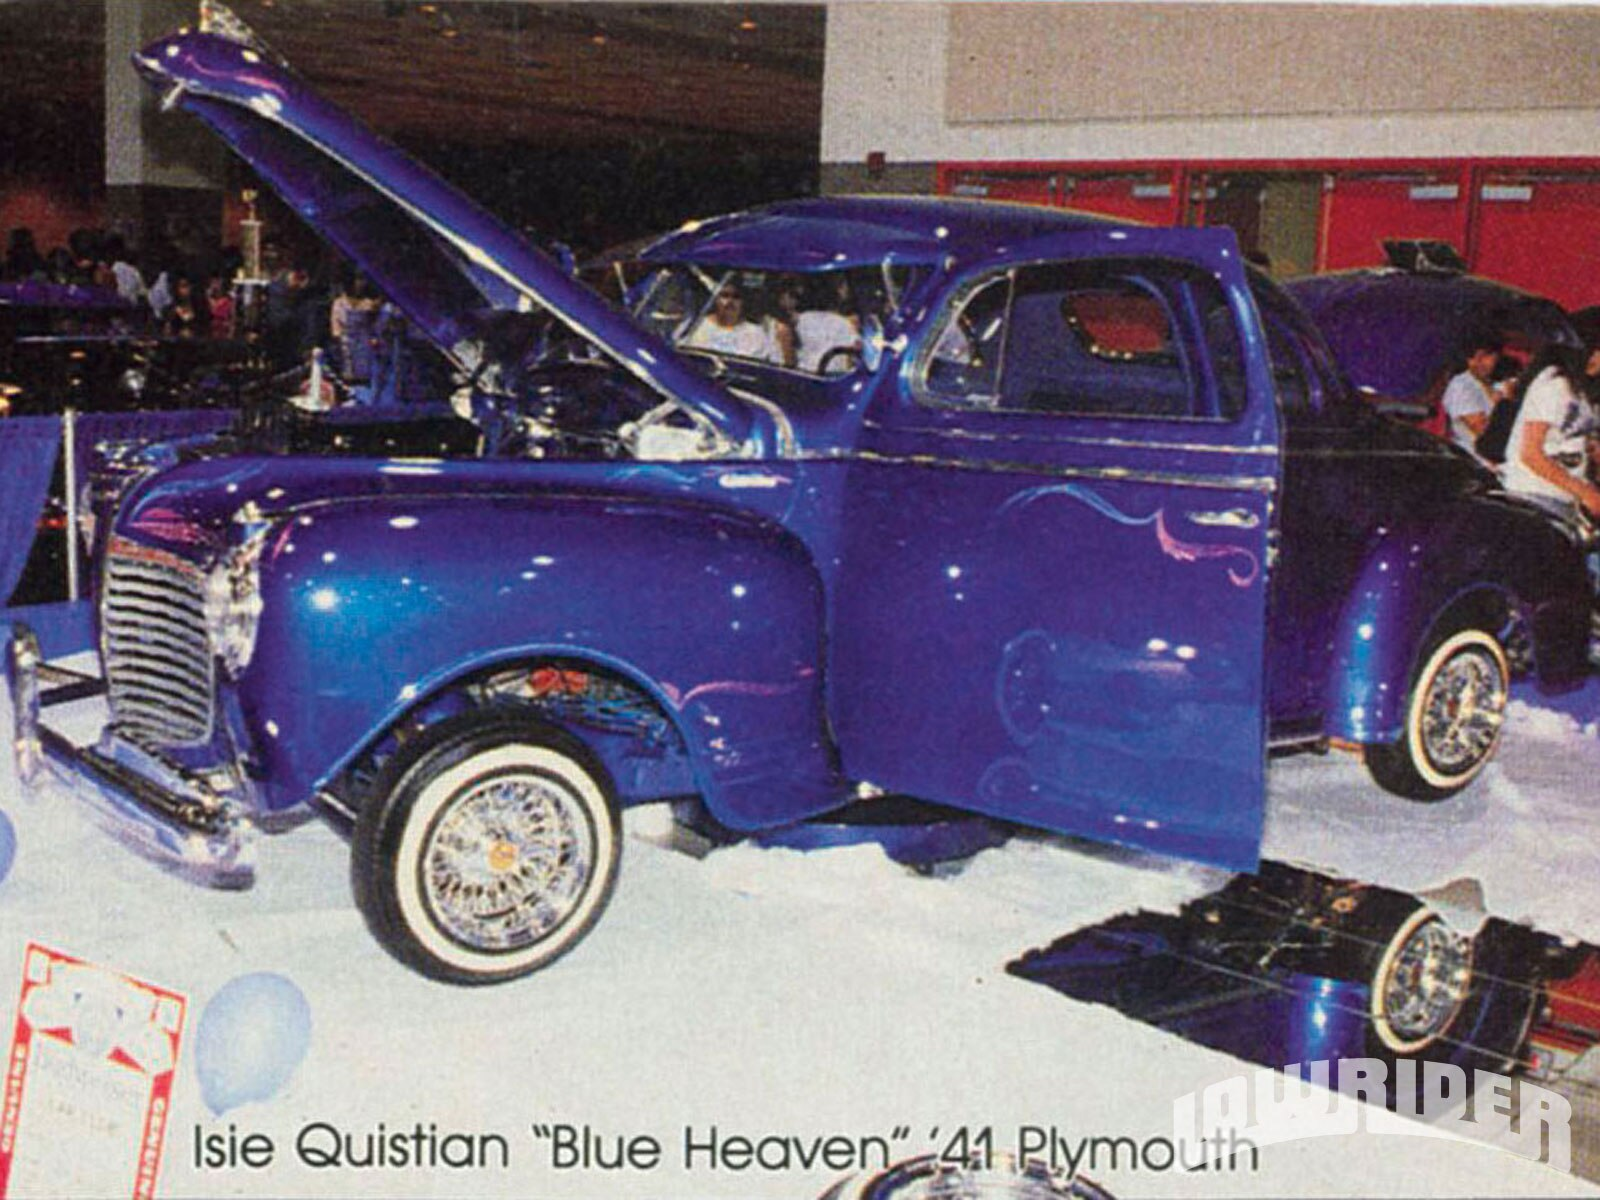 1206-lrmp-42-o-lowrider-magazine-1989-1990-lowrider-archives1